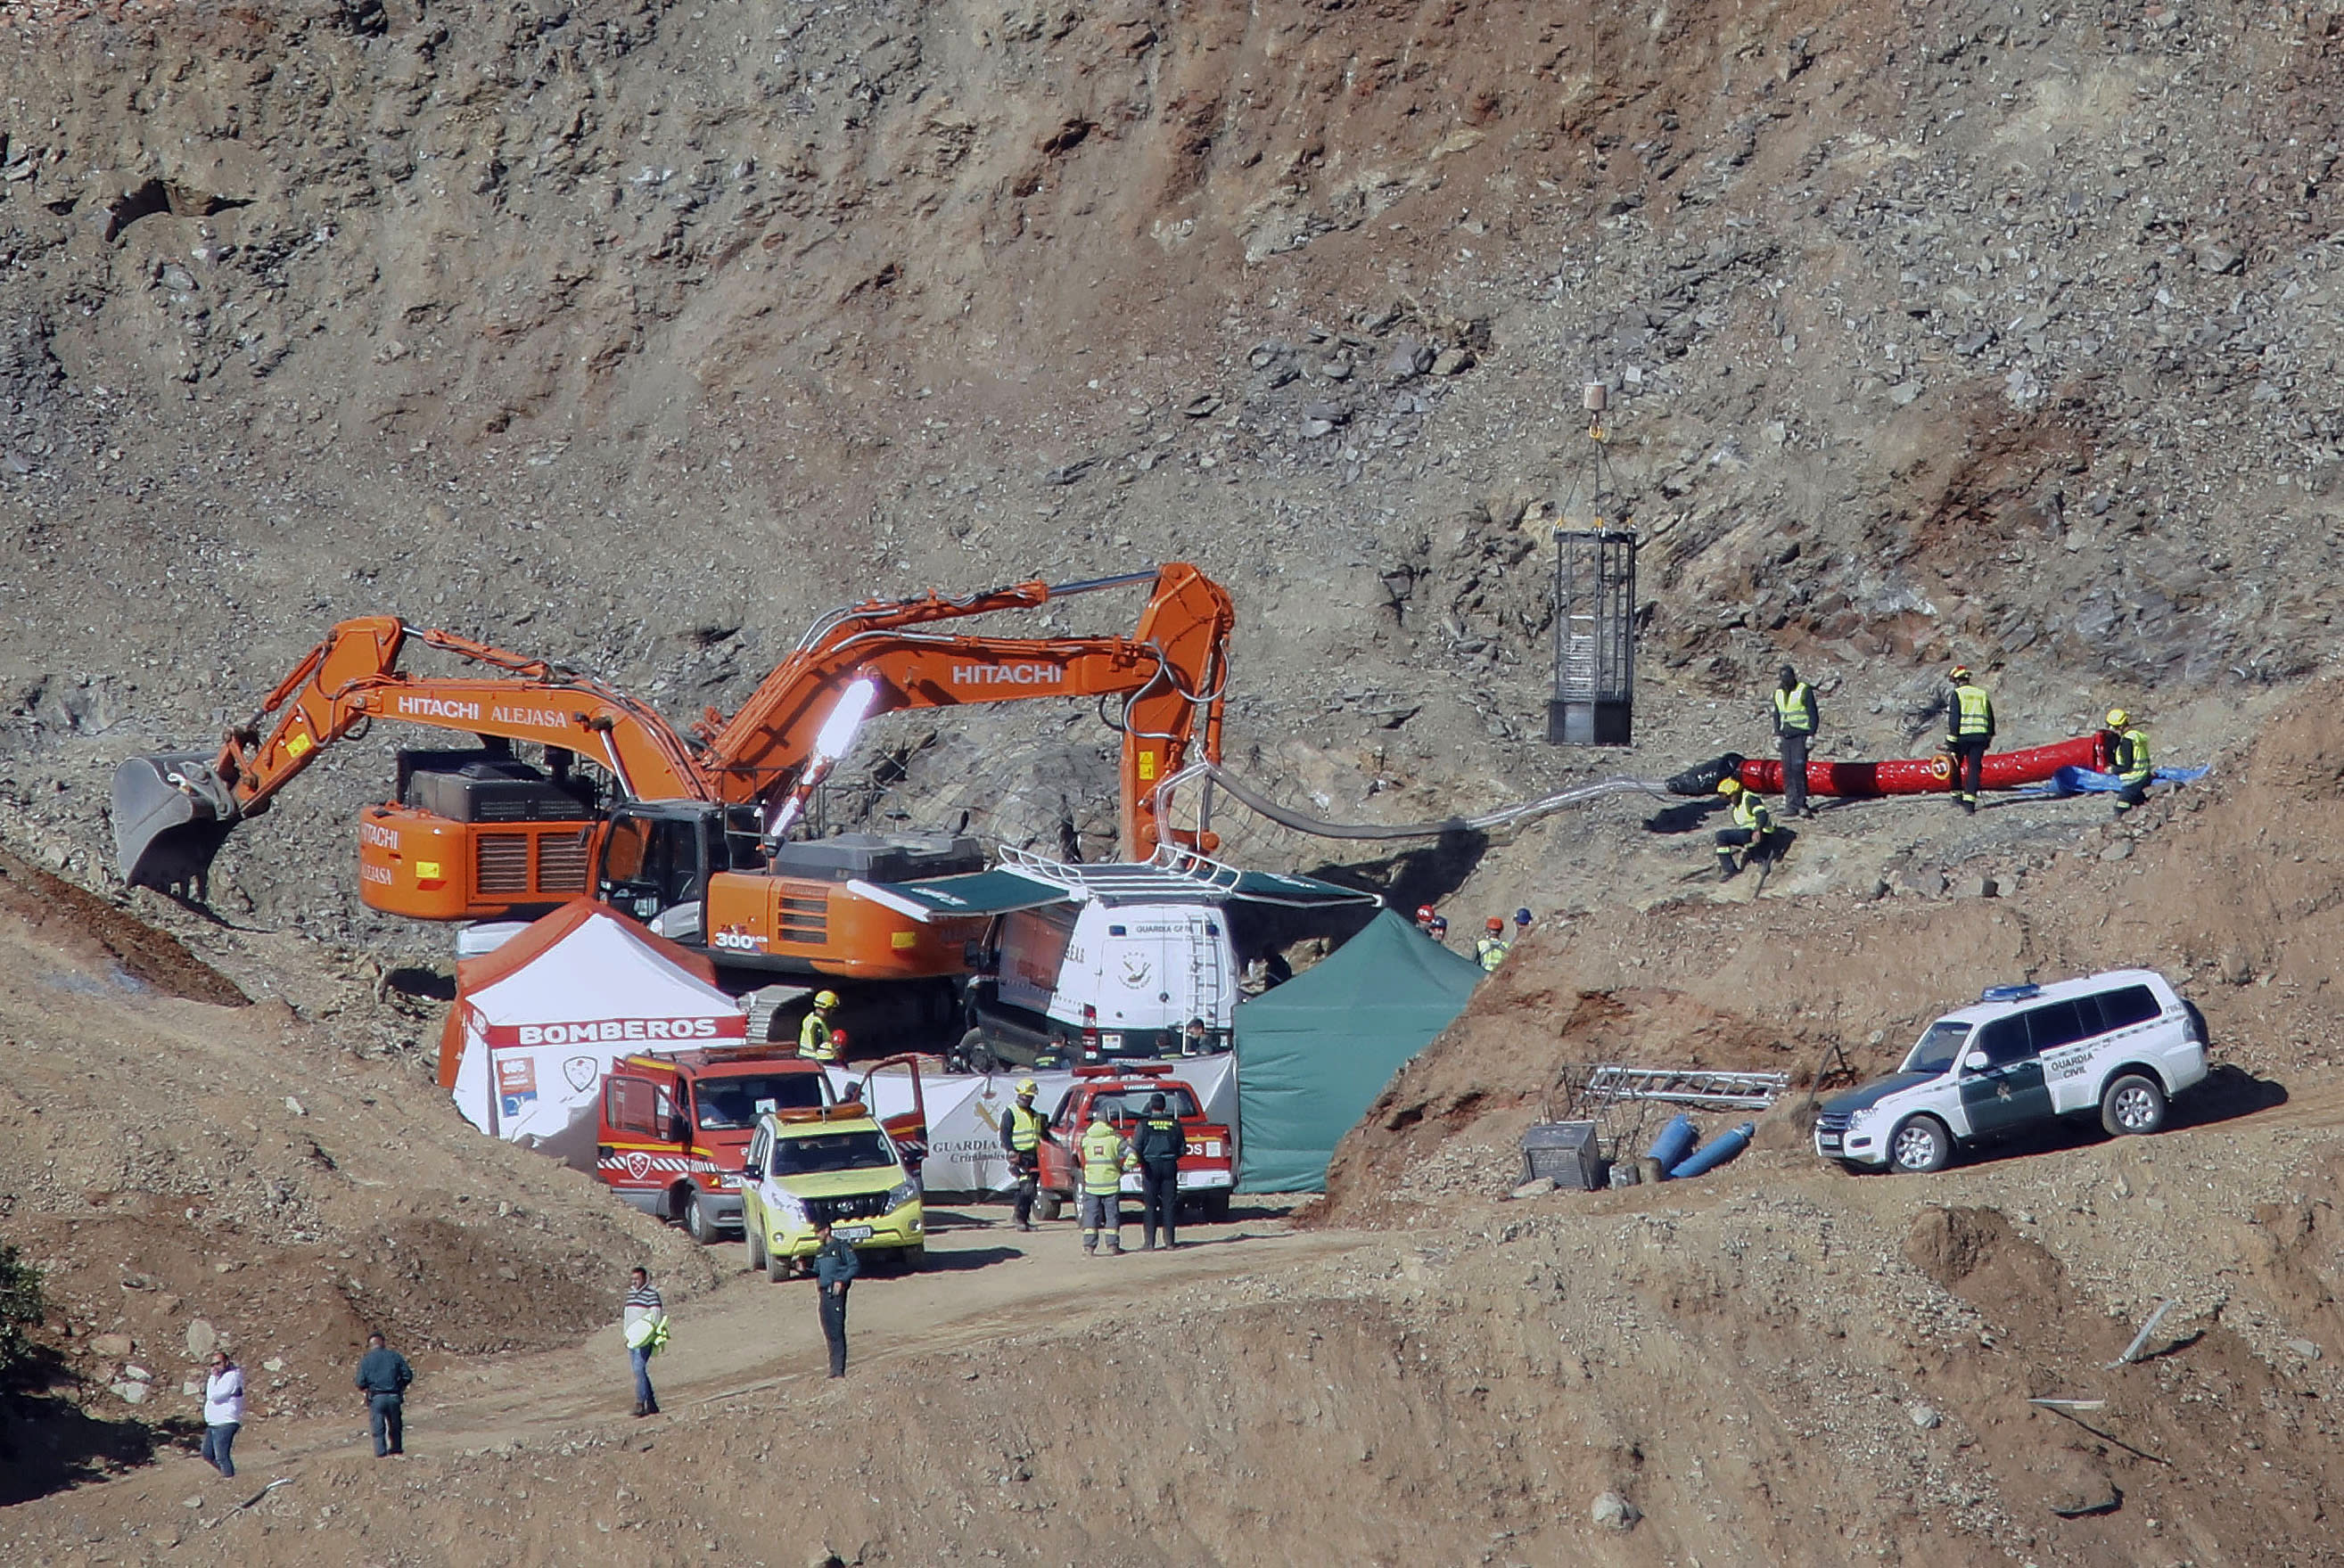 The Latest Rescuers Say Trapped Spanish Boy Found Dead